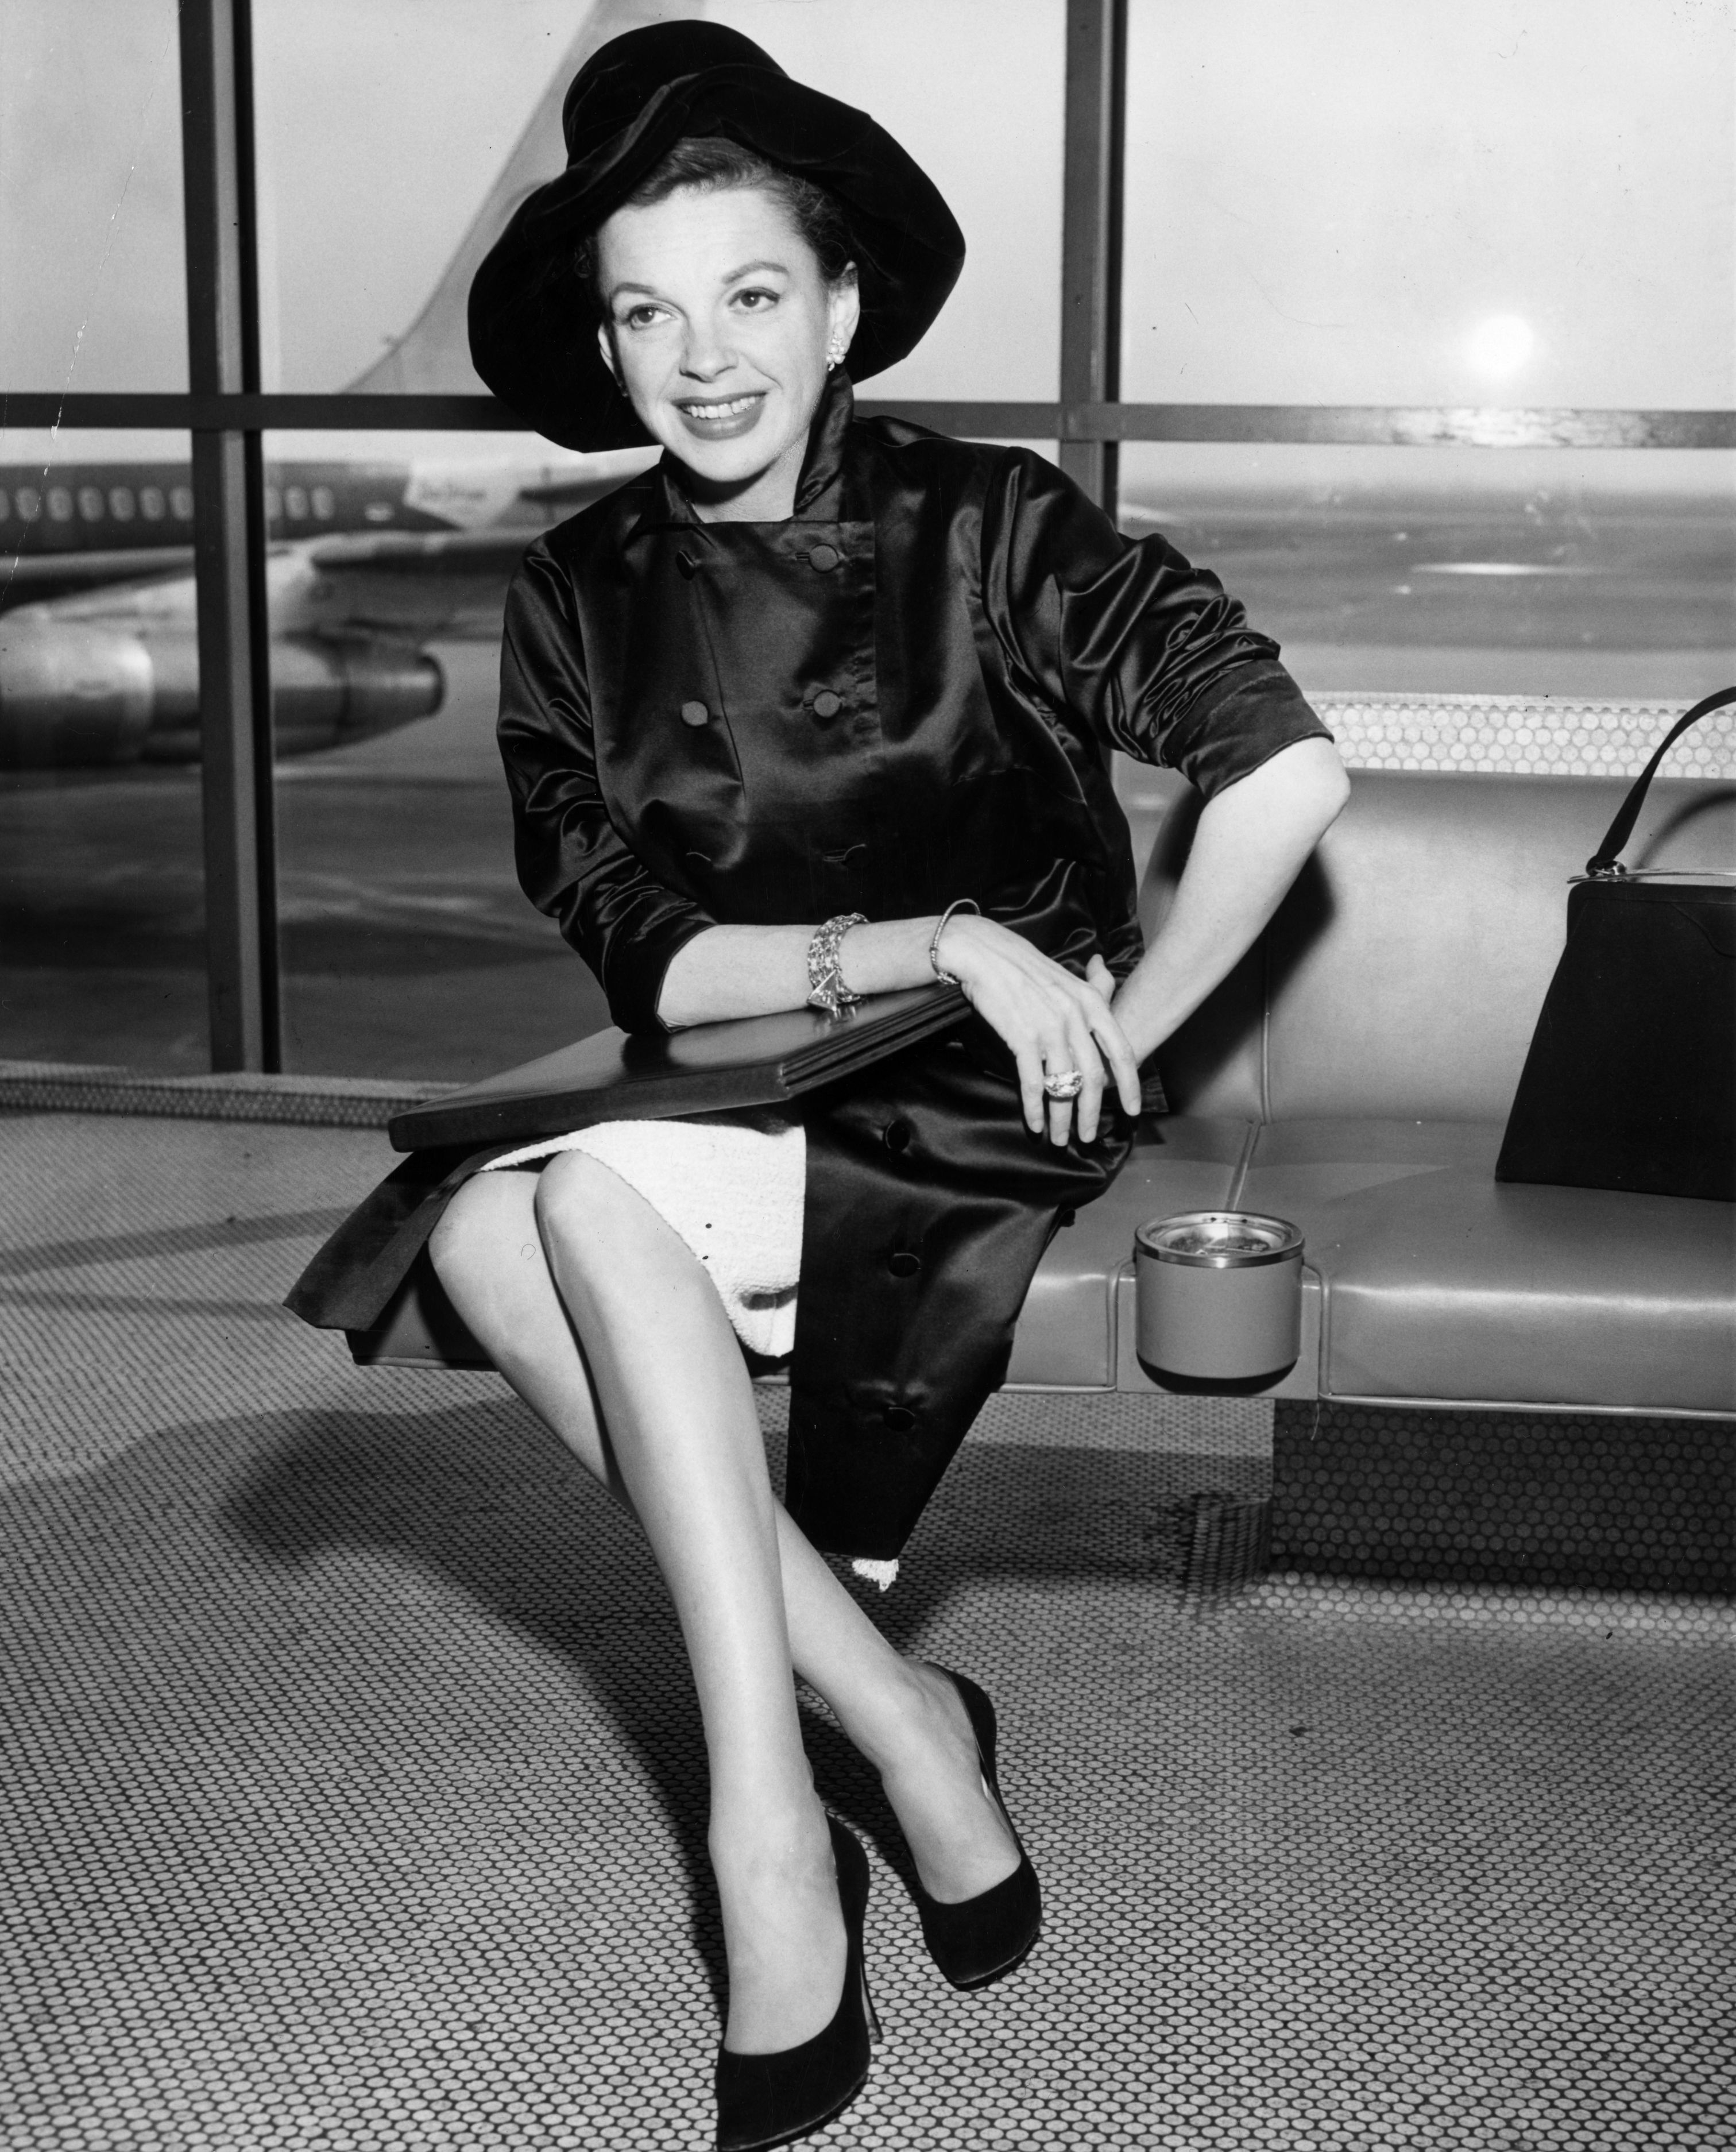 Judy Garland (1922 - 1969) at an airport. | Source: Getty Images